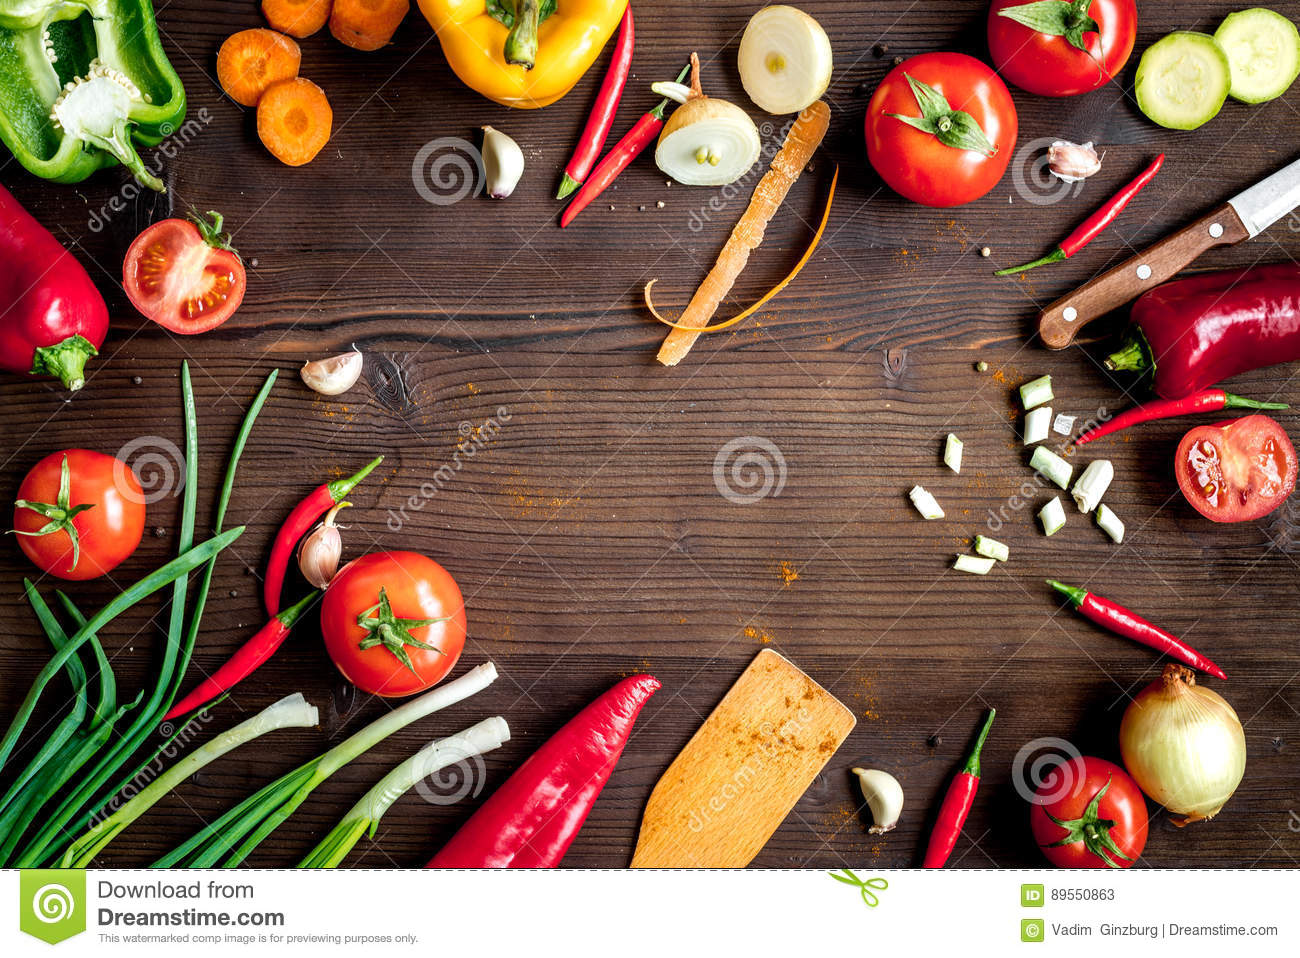 Ingredients for vegetable ragout on wooden background top view